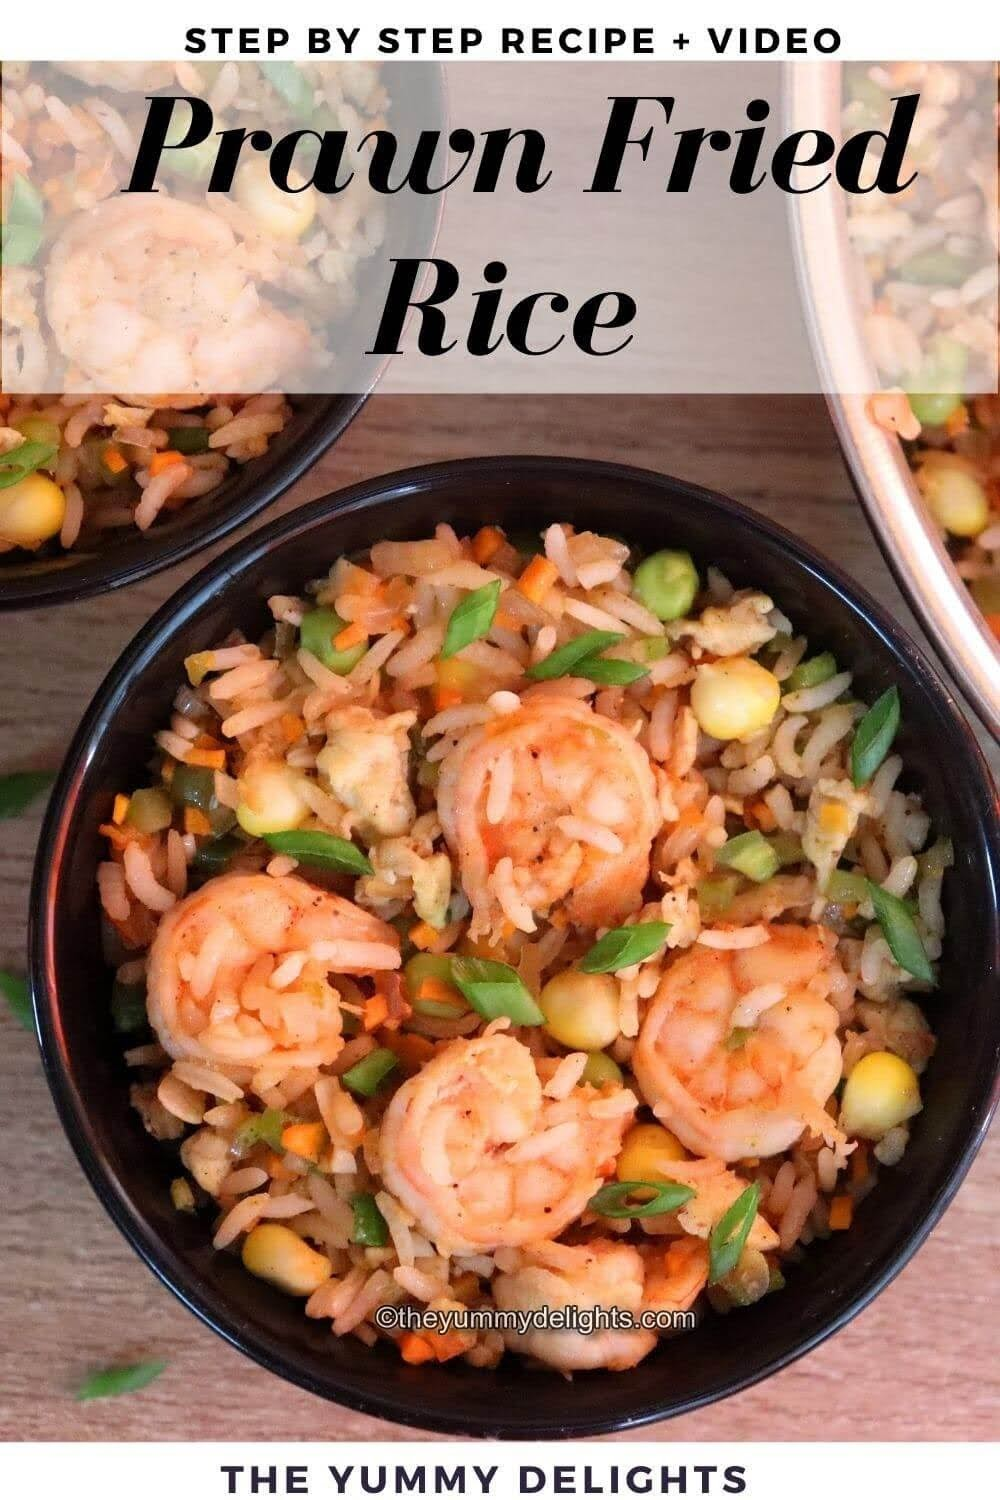 prawn fried rice served in a black bowl. Fried rice is garnished with spring onion greens.